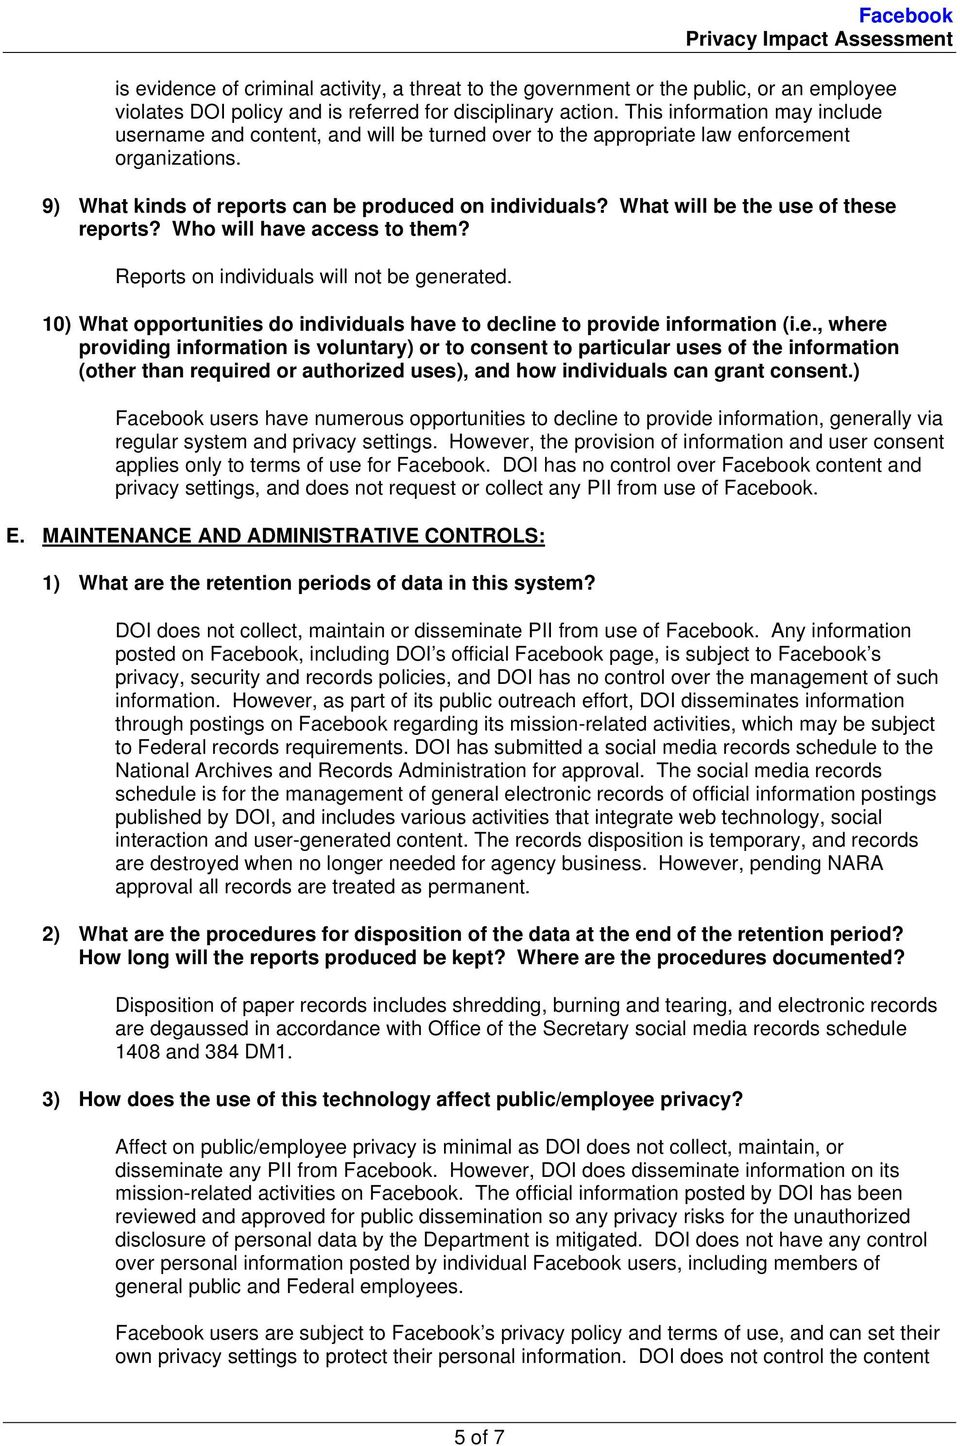 What will be the use of these reports? Who will have access to them? Reports on individuals will not be generated. 10) What opportunities do individuals have to decline to provide information (i.e., where providing information is voluntary) or to consent to particular uses of the information (other than required or authorized uses), and how individuals can grant consent.